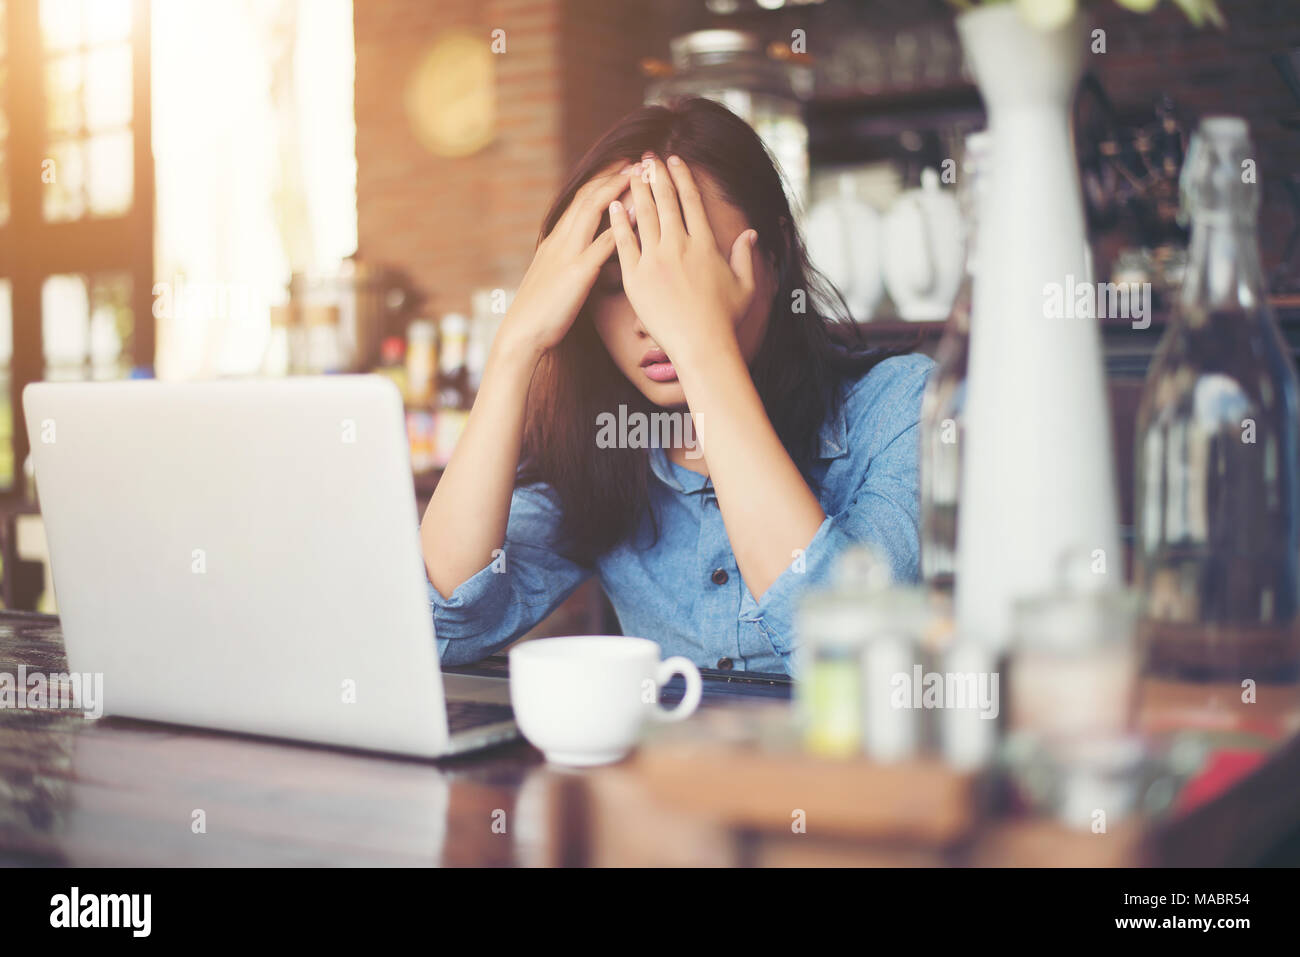 Young woman sitting in a cafe with her laptop, Stressful for work. - Stock Image